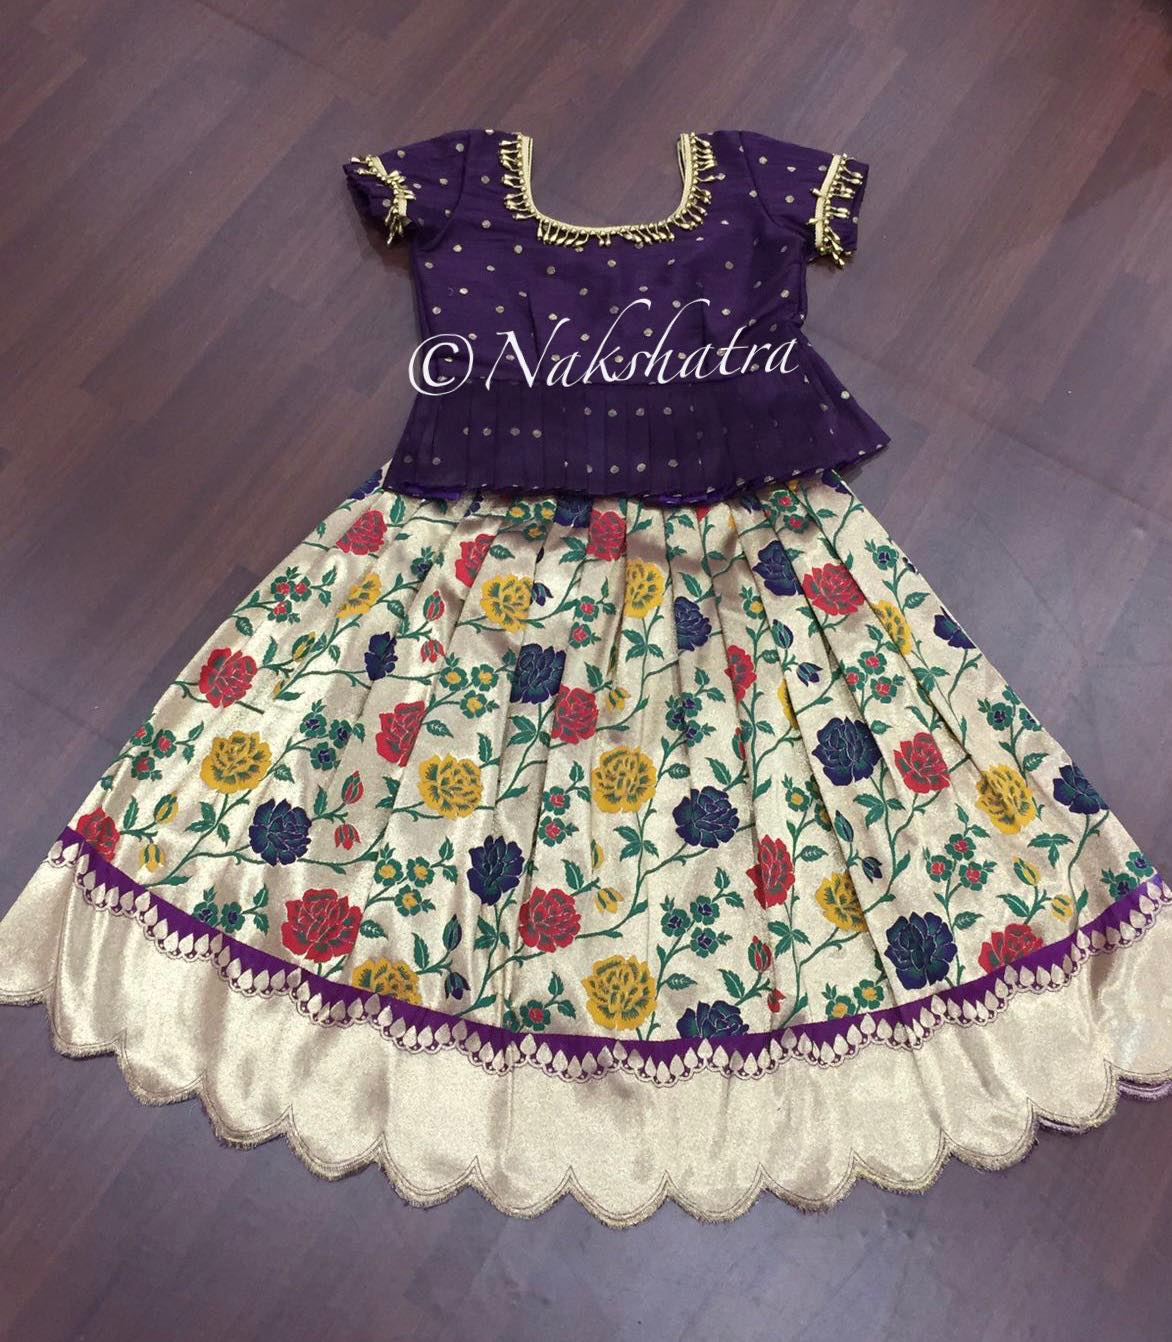 Kids banraasi pythani allover floral design lehanga with scallped edges paired with cute wine color peplum blouse  Shoulder to toe lenght -32-34 inches extendable  Blouse lenght -15  Chest -24-28 extendable 2021-10-04